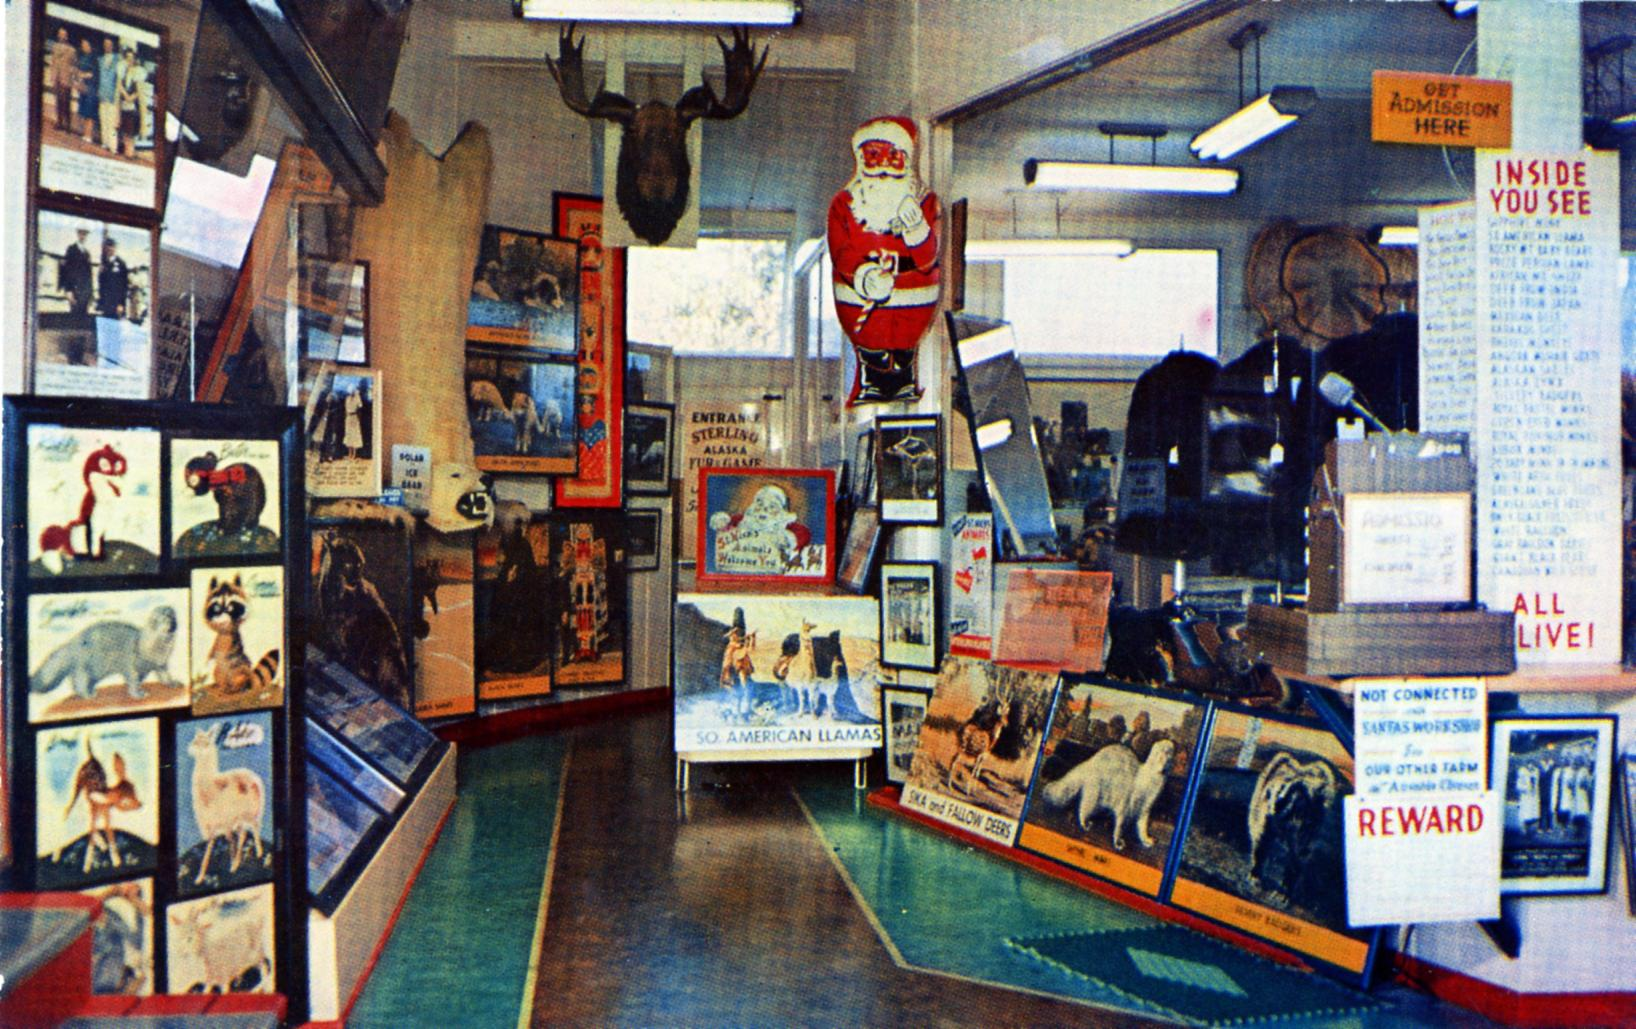 New York Sterling Alaska Fur & Game Farms Entrance Lobby Lake Placid NY Home of St. Nick's Animals See 1000 Fur and Game Alive and Tame 3 farms--Lake Placid, Ausable Chasm, Plattsburg, NY